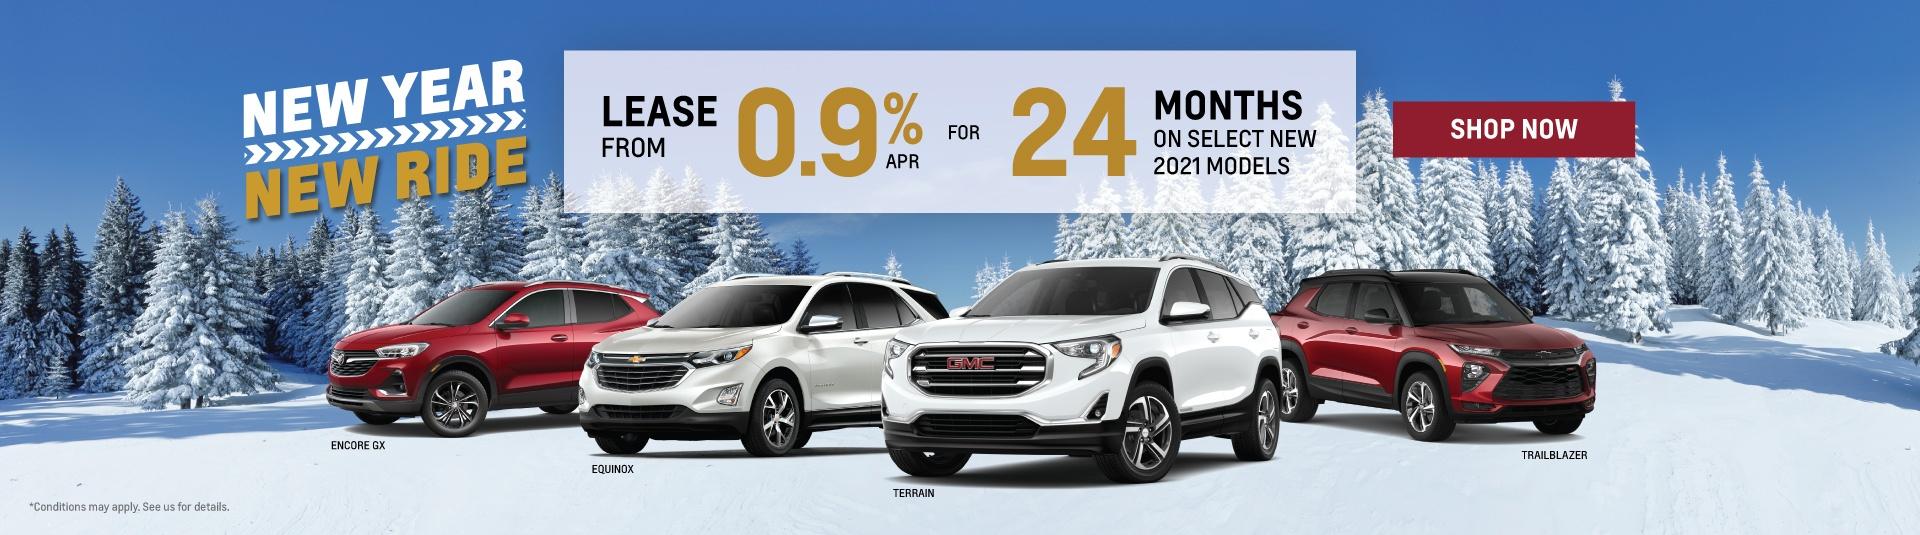 Chevrolet, Buick and GMC 2021 SUV Offers in Toronto